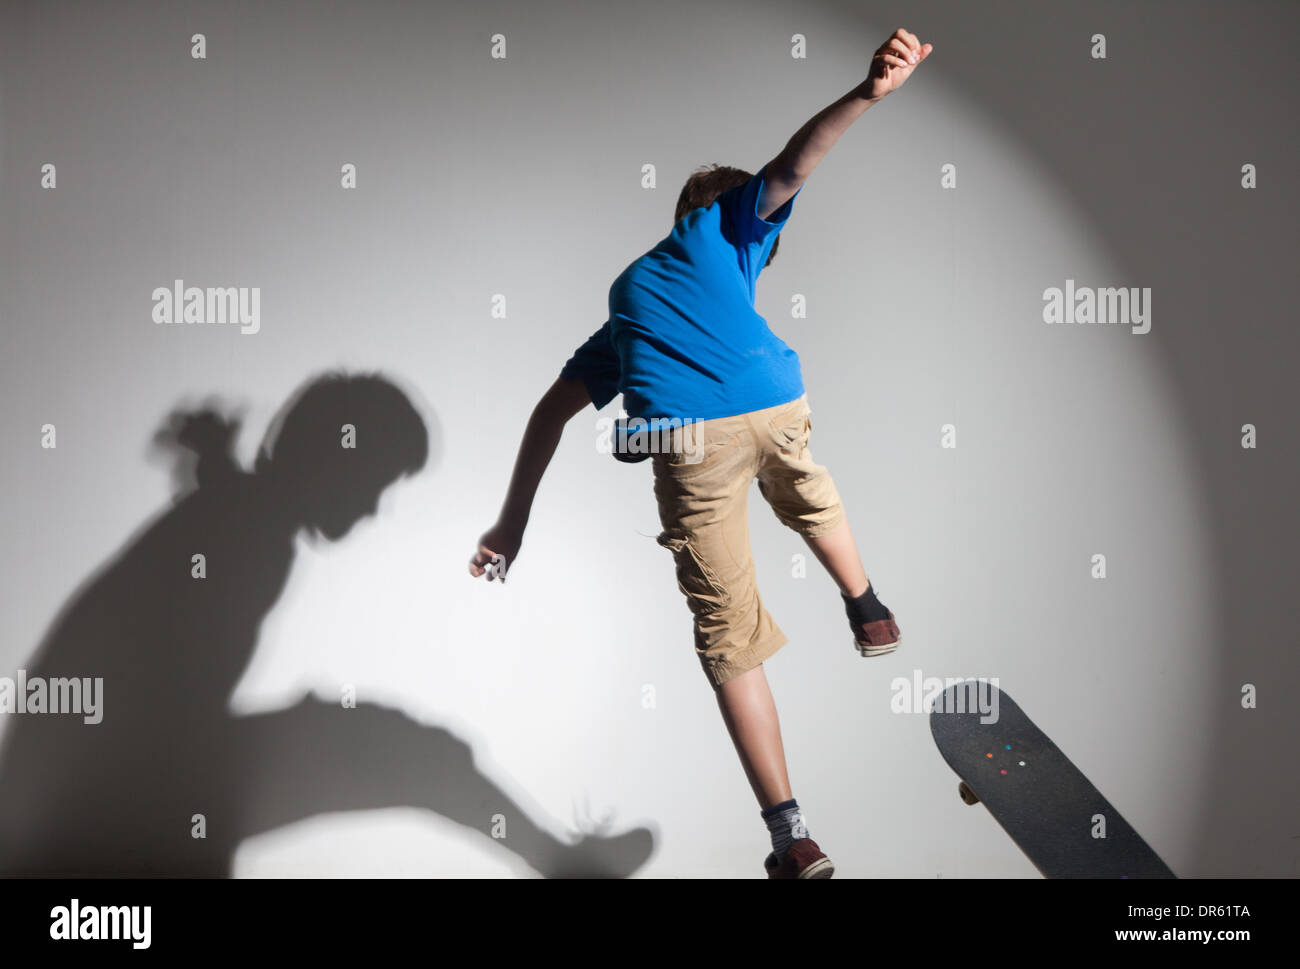 boy leaping with skateboard and shadow - Stock Image